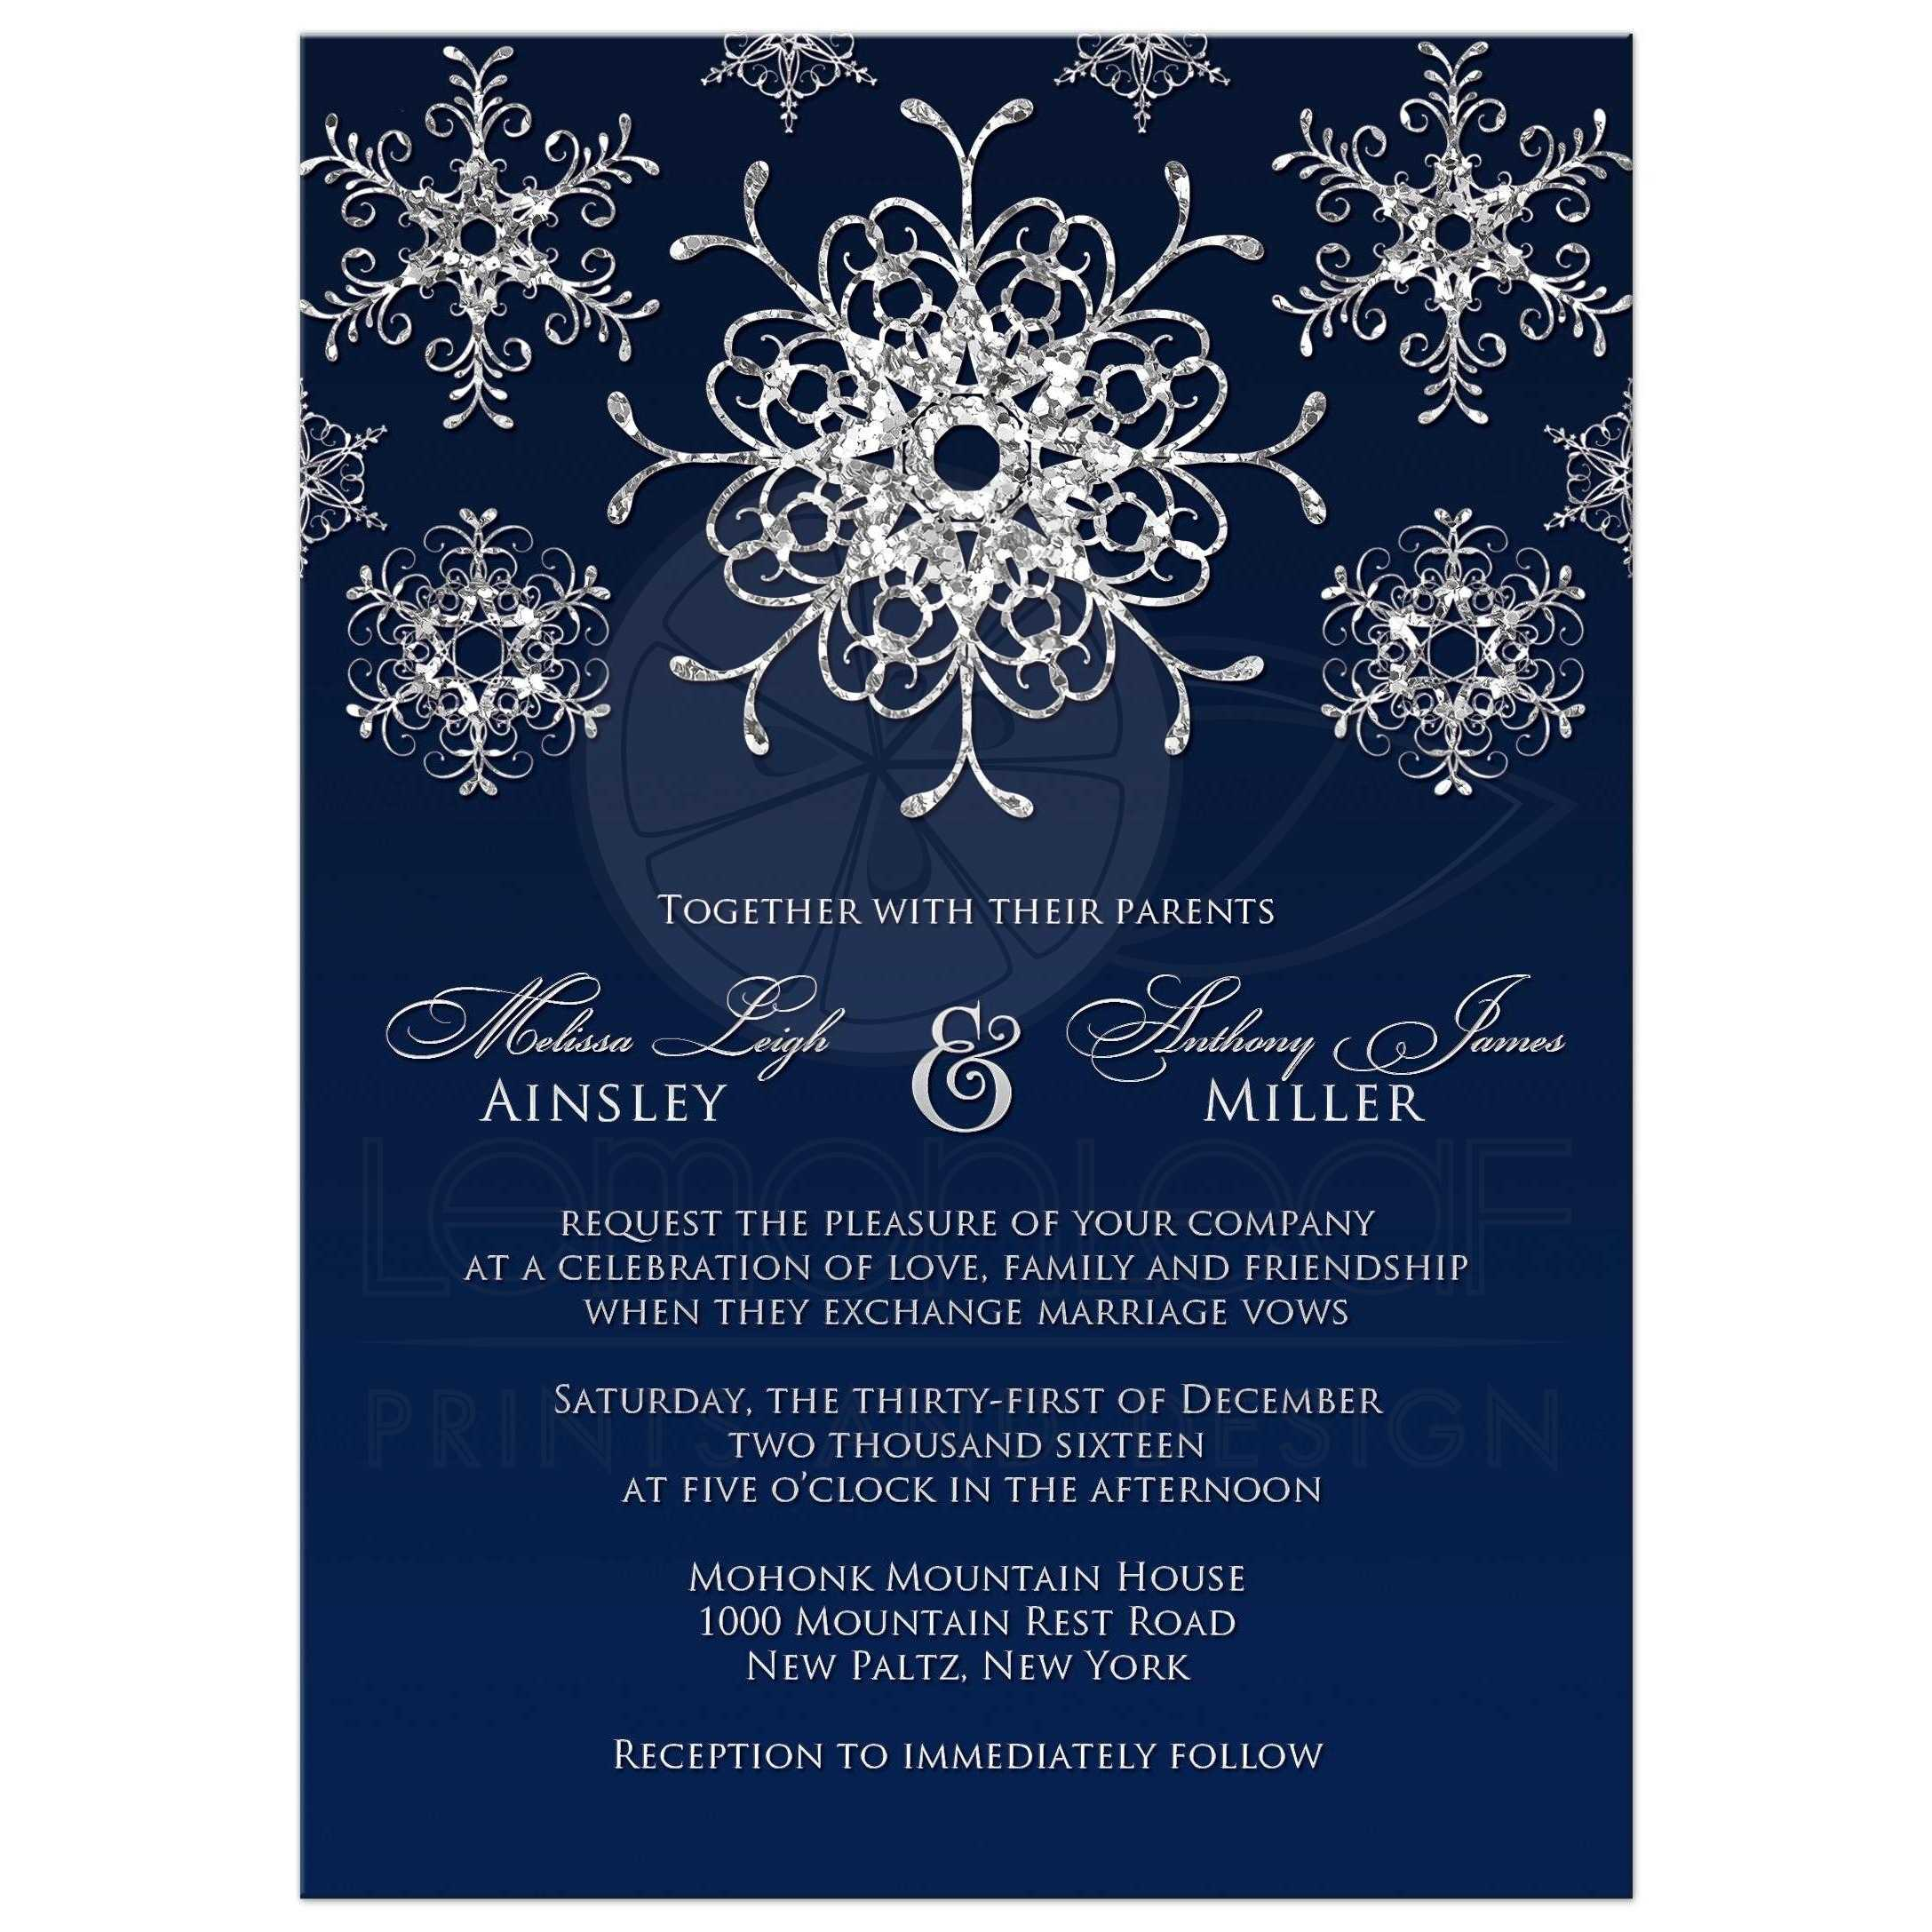 Best Winter Wonderland Wedding Invitation In Navy Blue And Silver  Snowflakes And Glitter ...